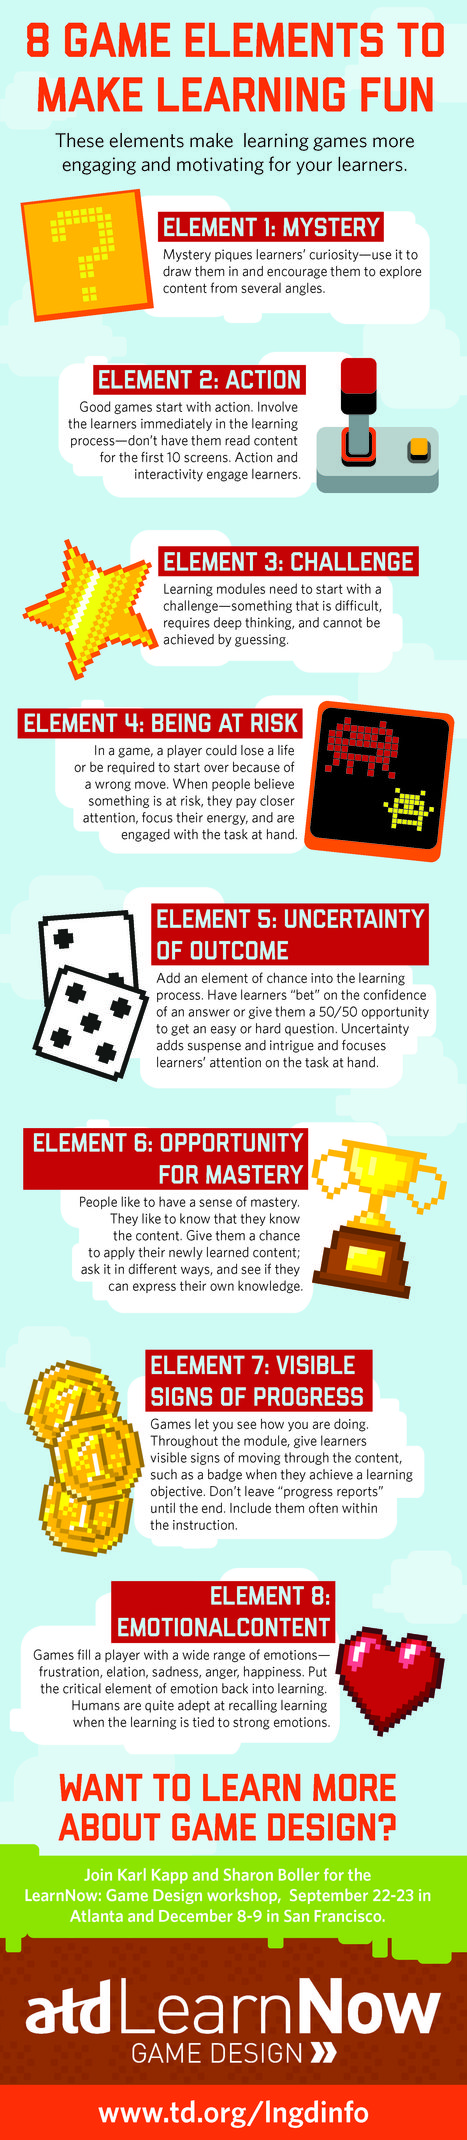 8 Game Elements to Make Learning Fun | Education Technology | Scoop.it